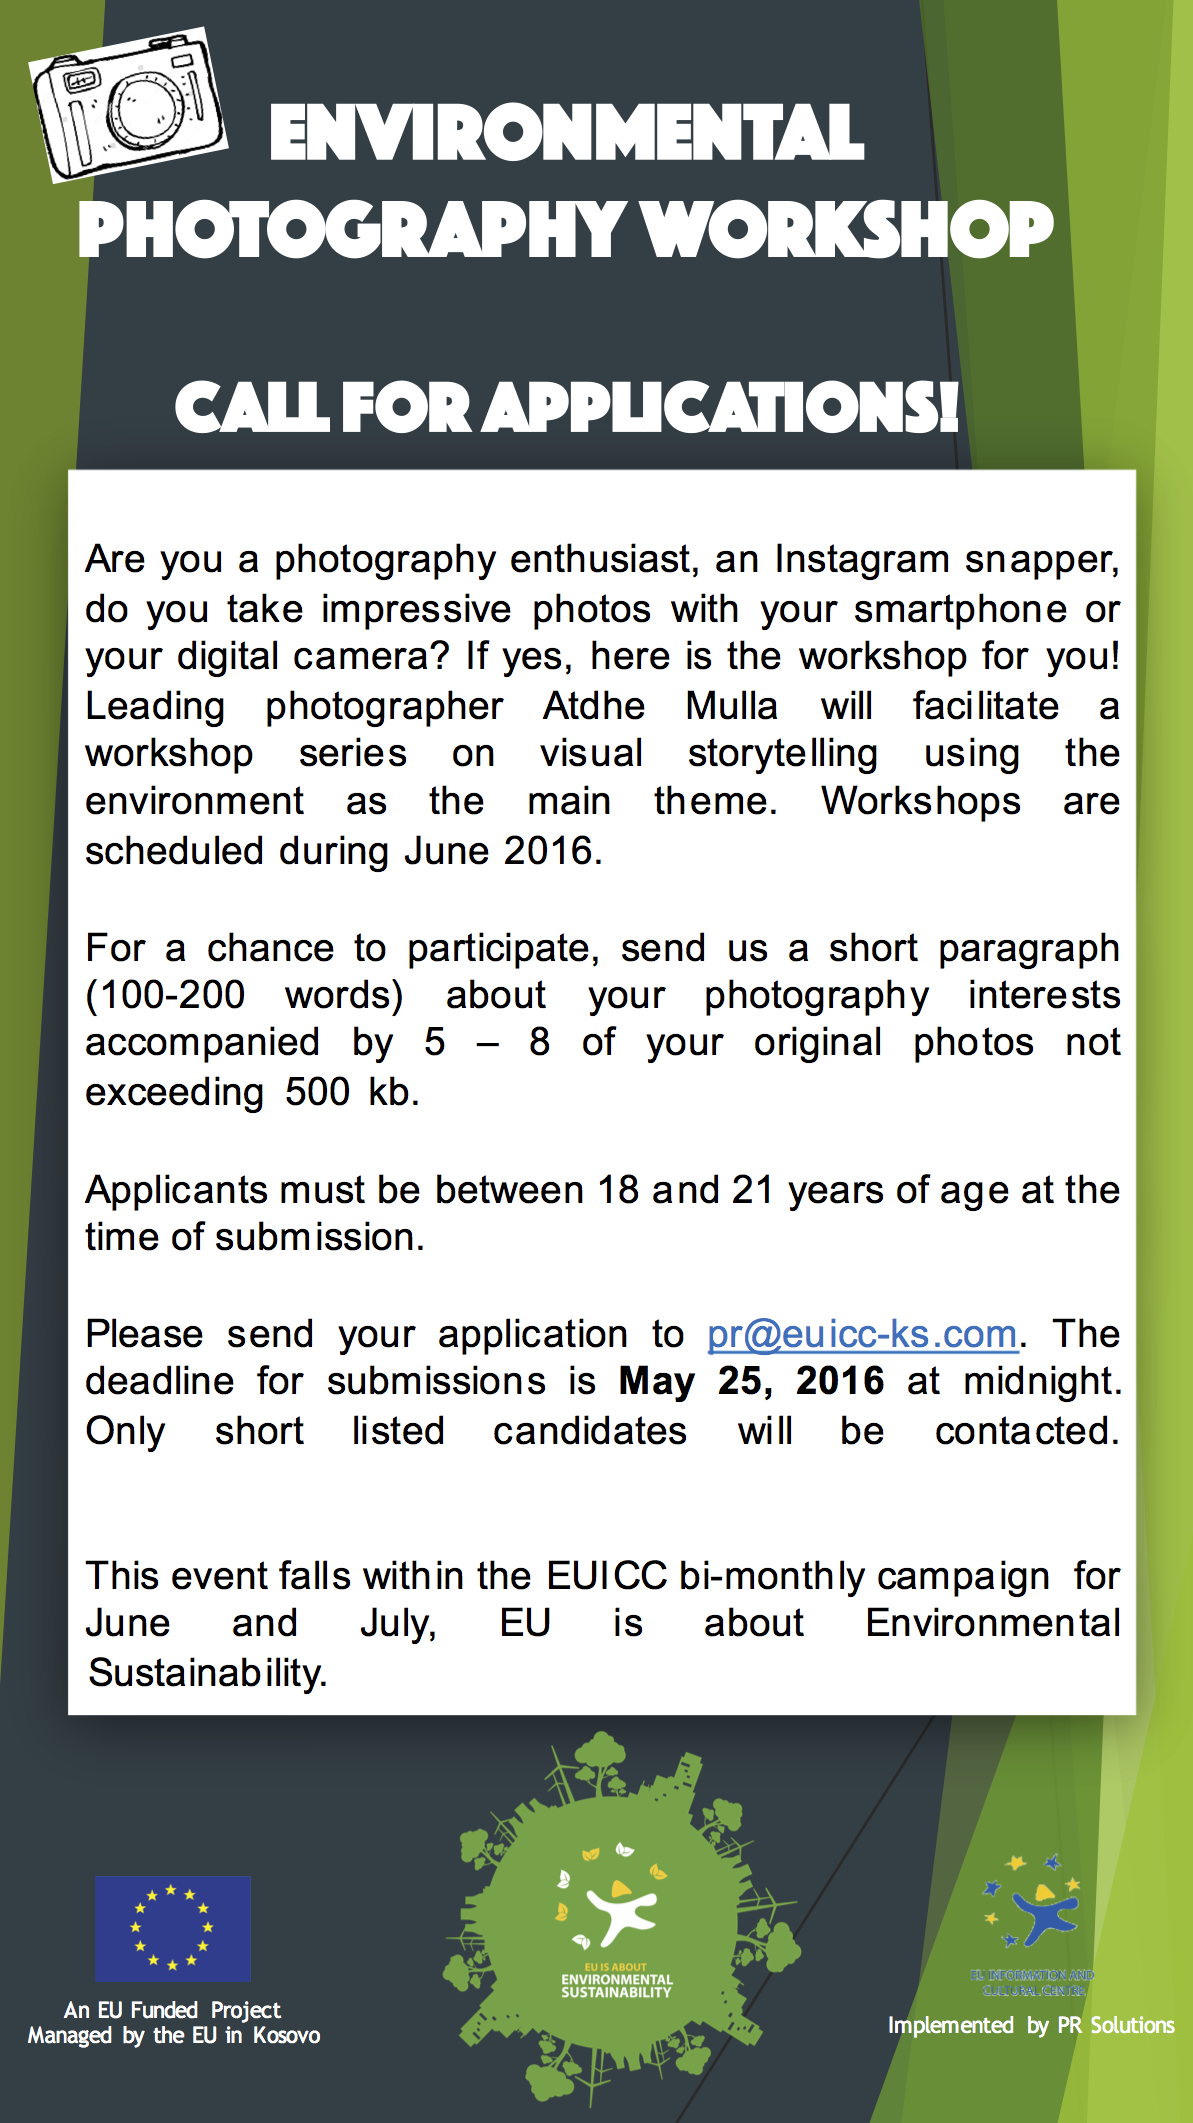 EUICC - Photography Call for Applications